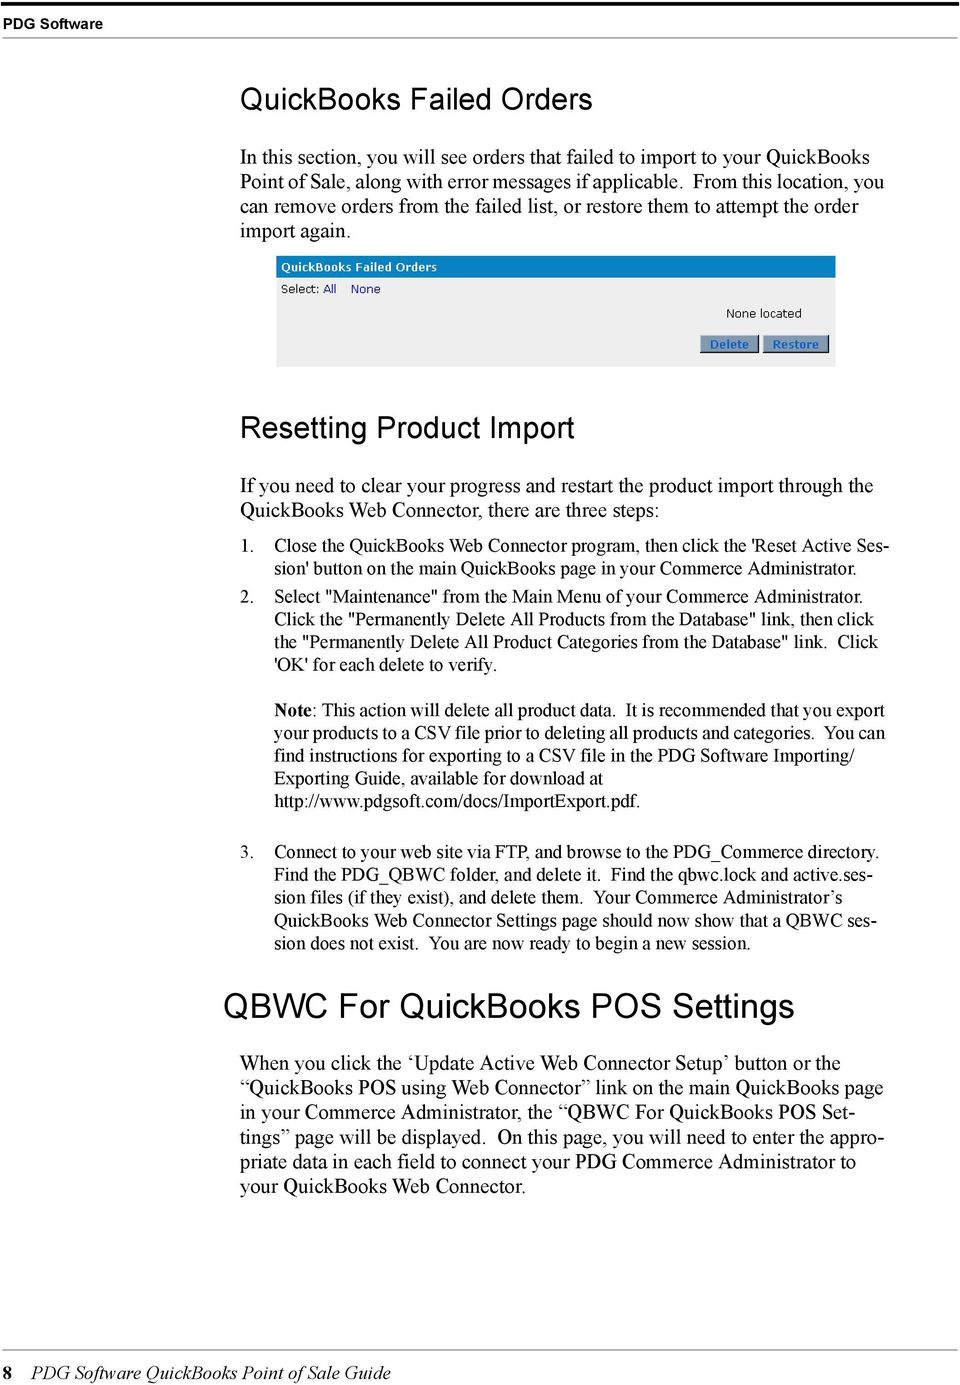 PDG Software  QuickBooks Point of Sale Guide - PDF